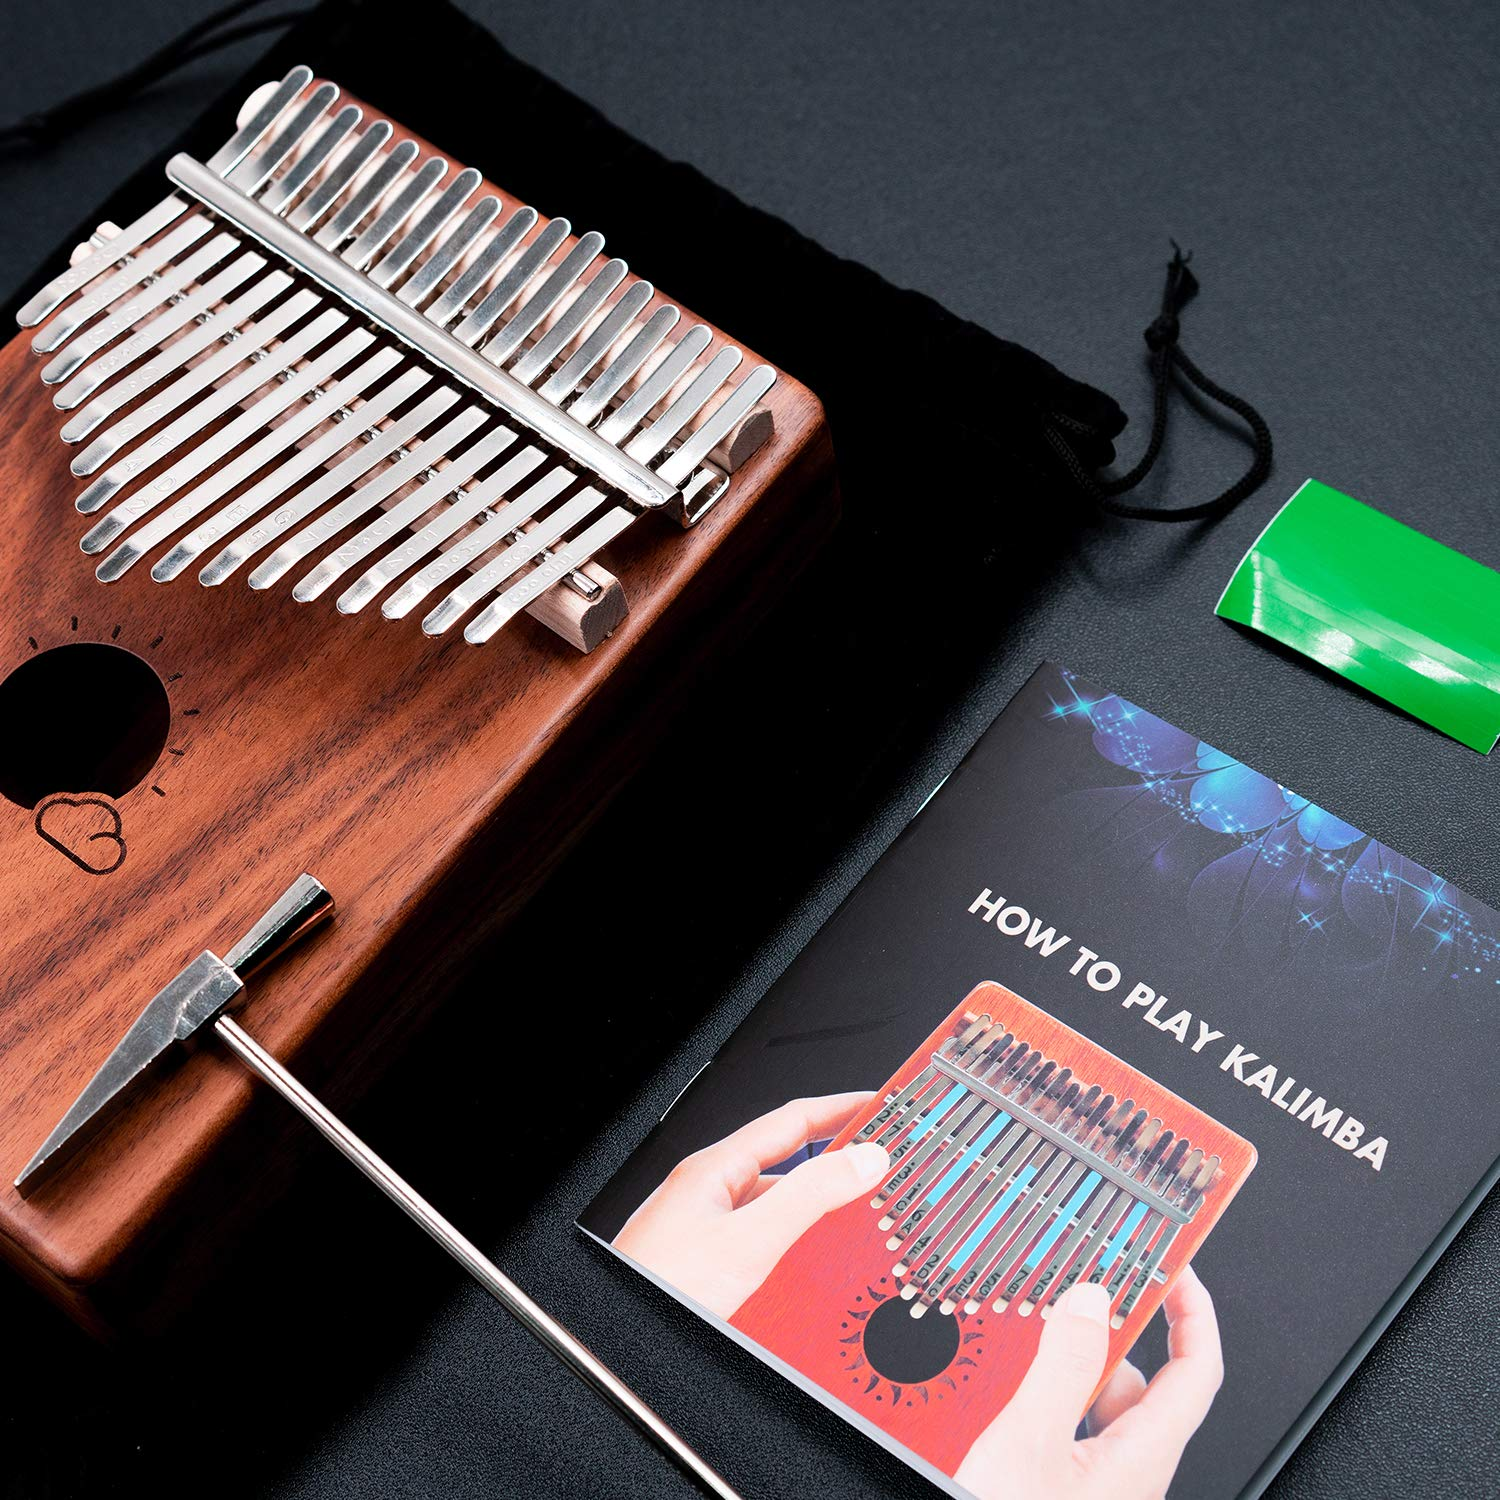 Kalimba 17 Keys Thumb Piano Solid Wood Finger Piano Musical Instrument with Study Instruction,Tuning Hammer,Gift for Kids Adult Beginners Professional without any musical basis(Dark Brown) by Tripolar (Image #2)